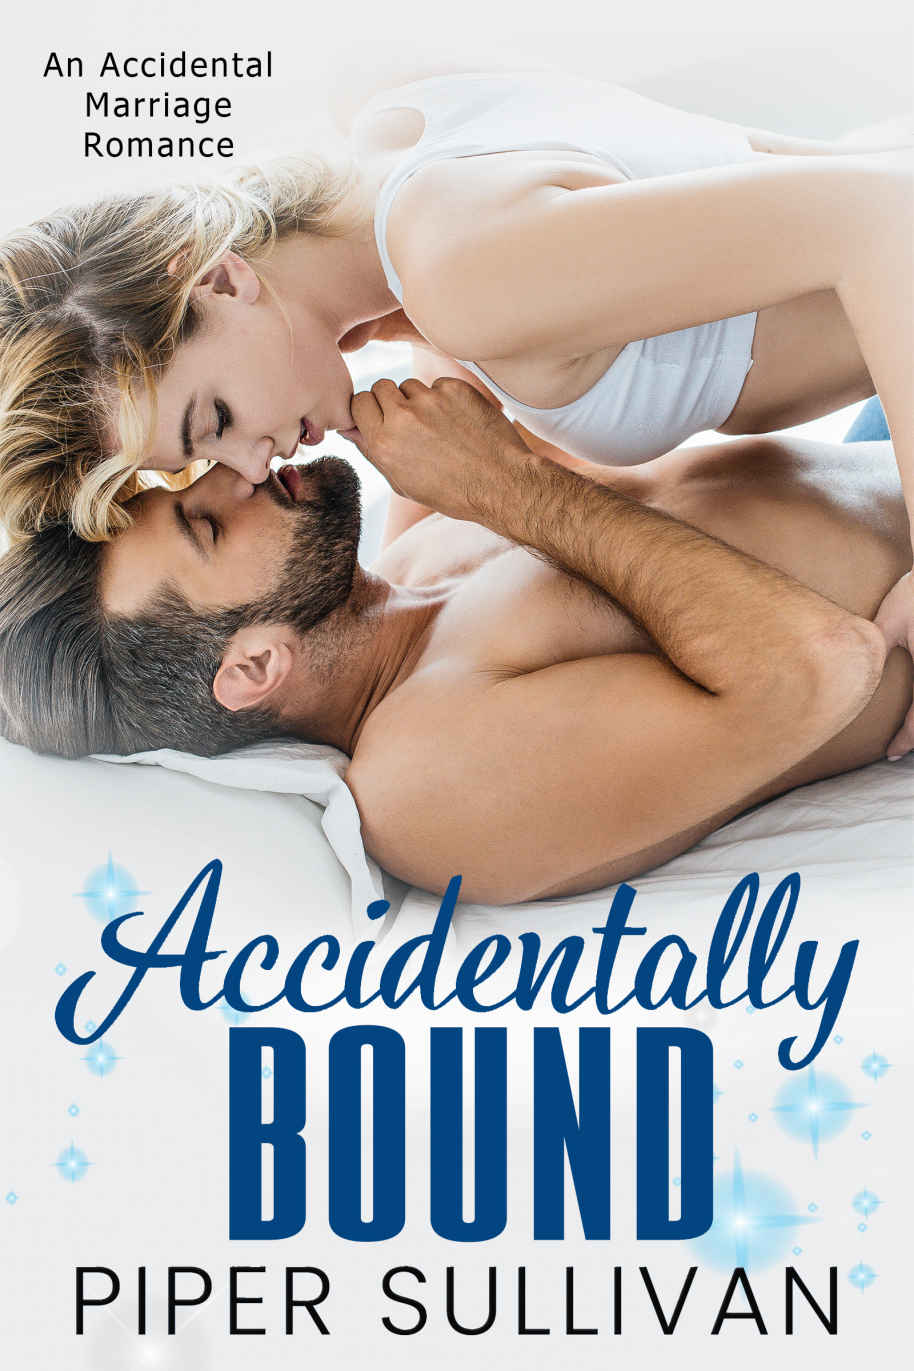 Accidentally Bound: An Accidental Marriage Romance 1st Edition Pdf Free Download